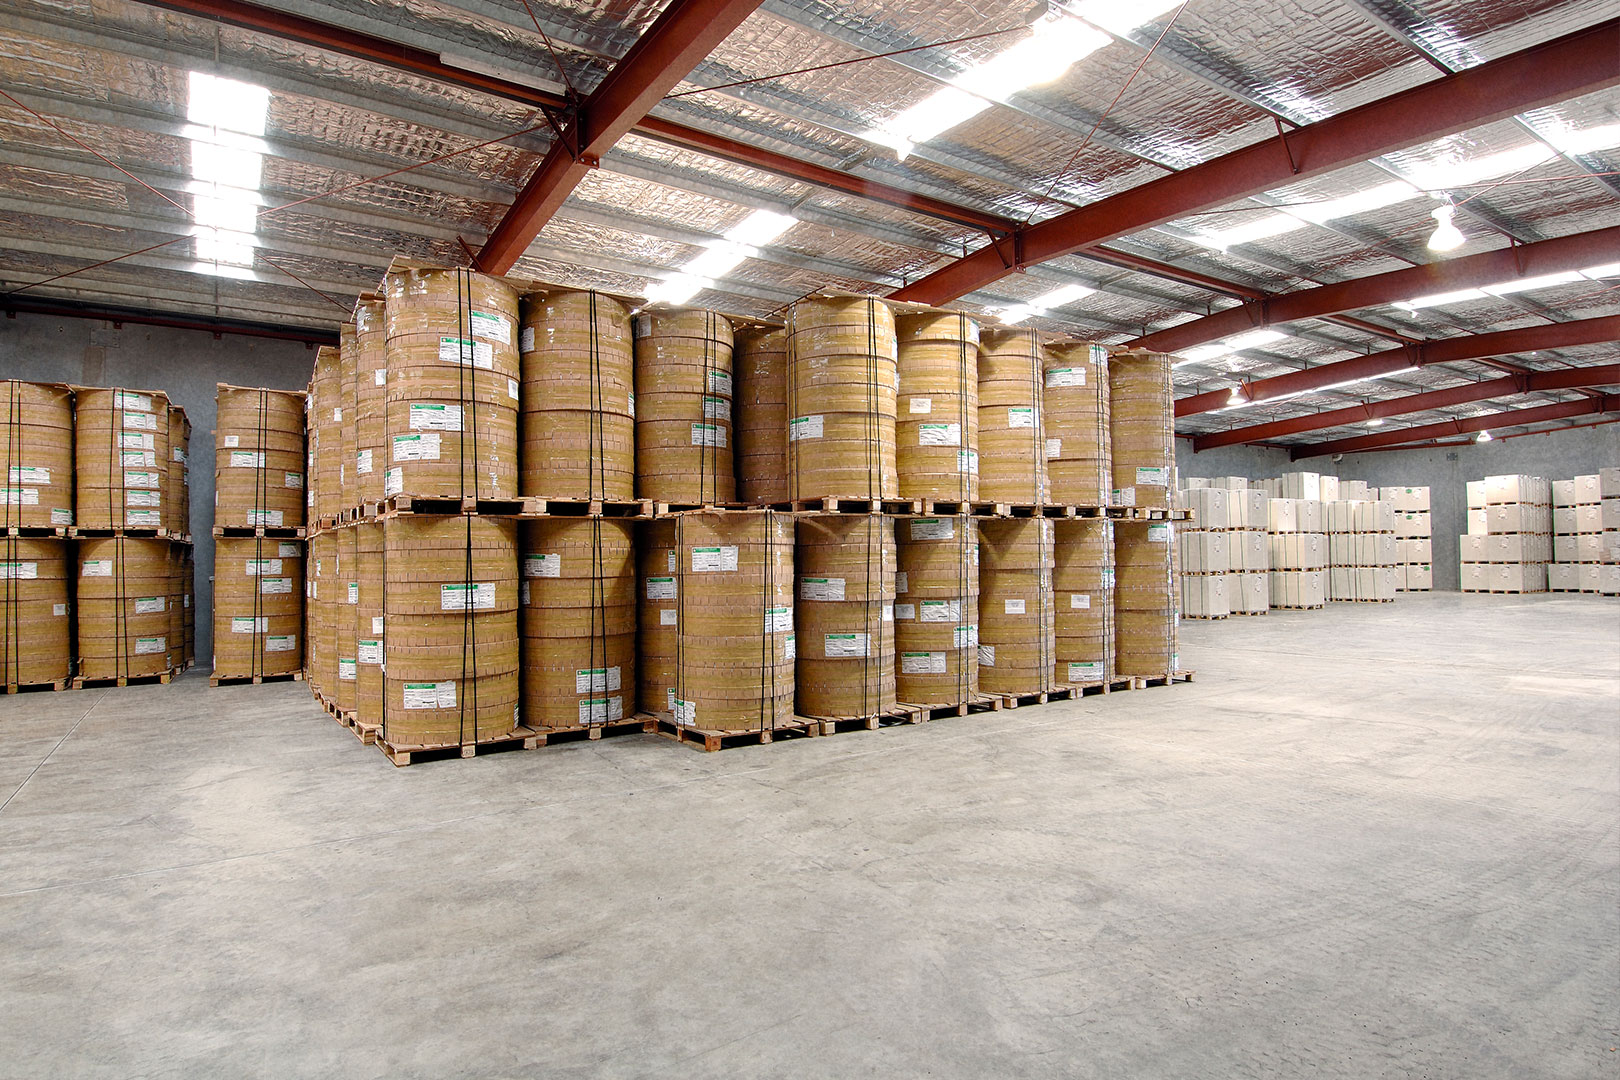 storage-centre-crates